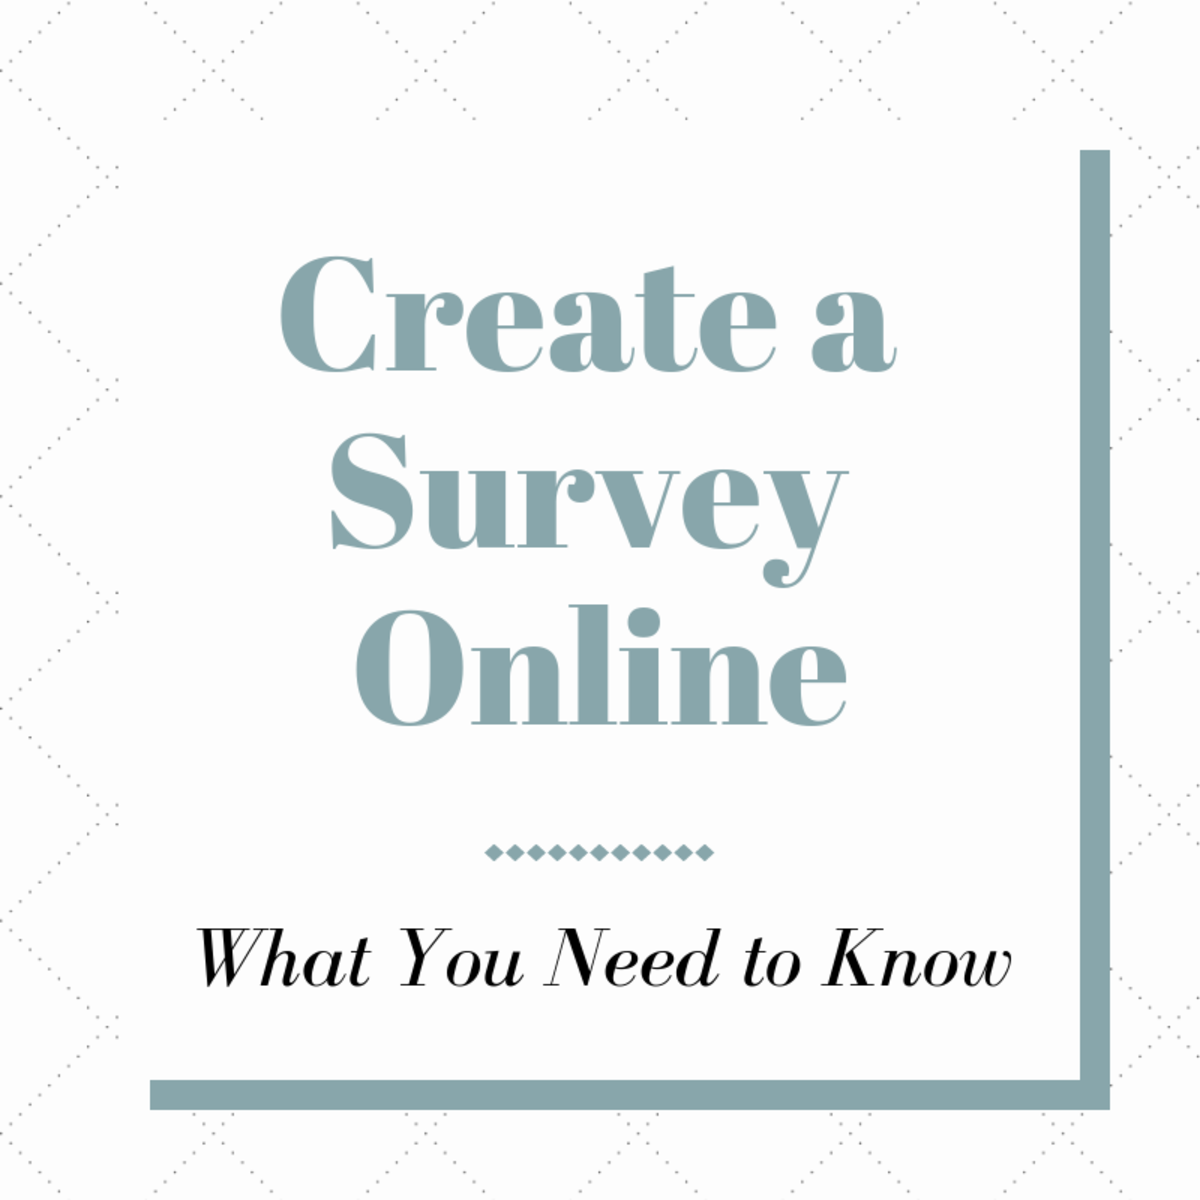 create-a-survey-online-what-you-need-to-know